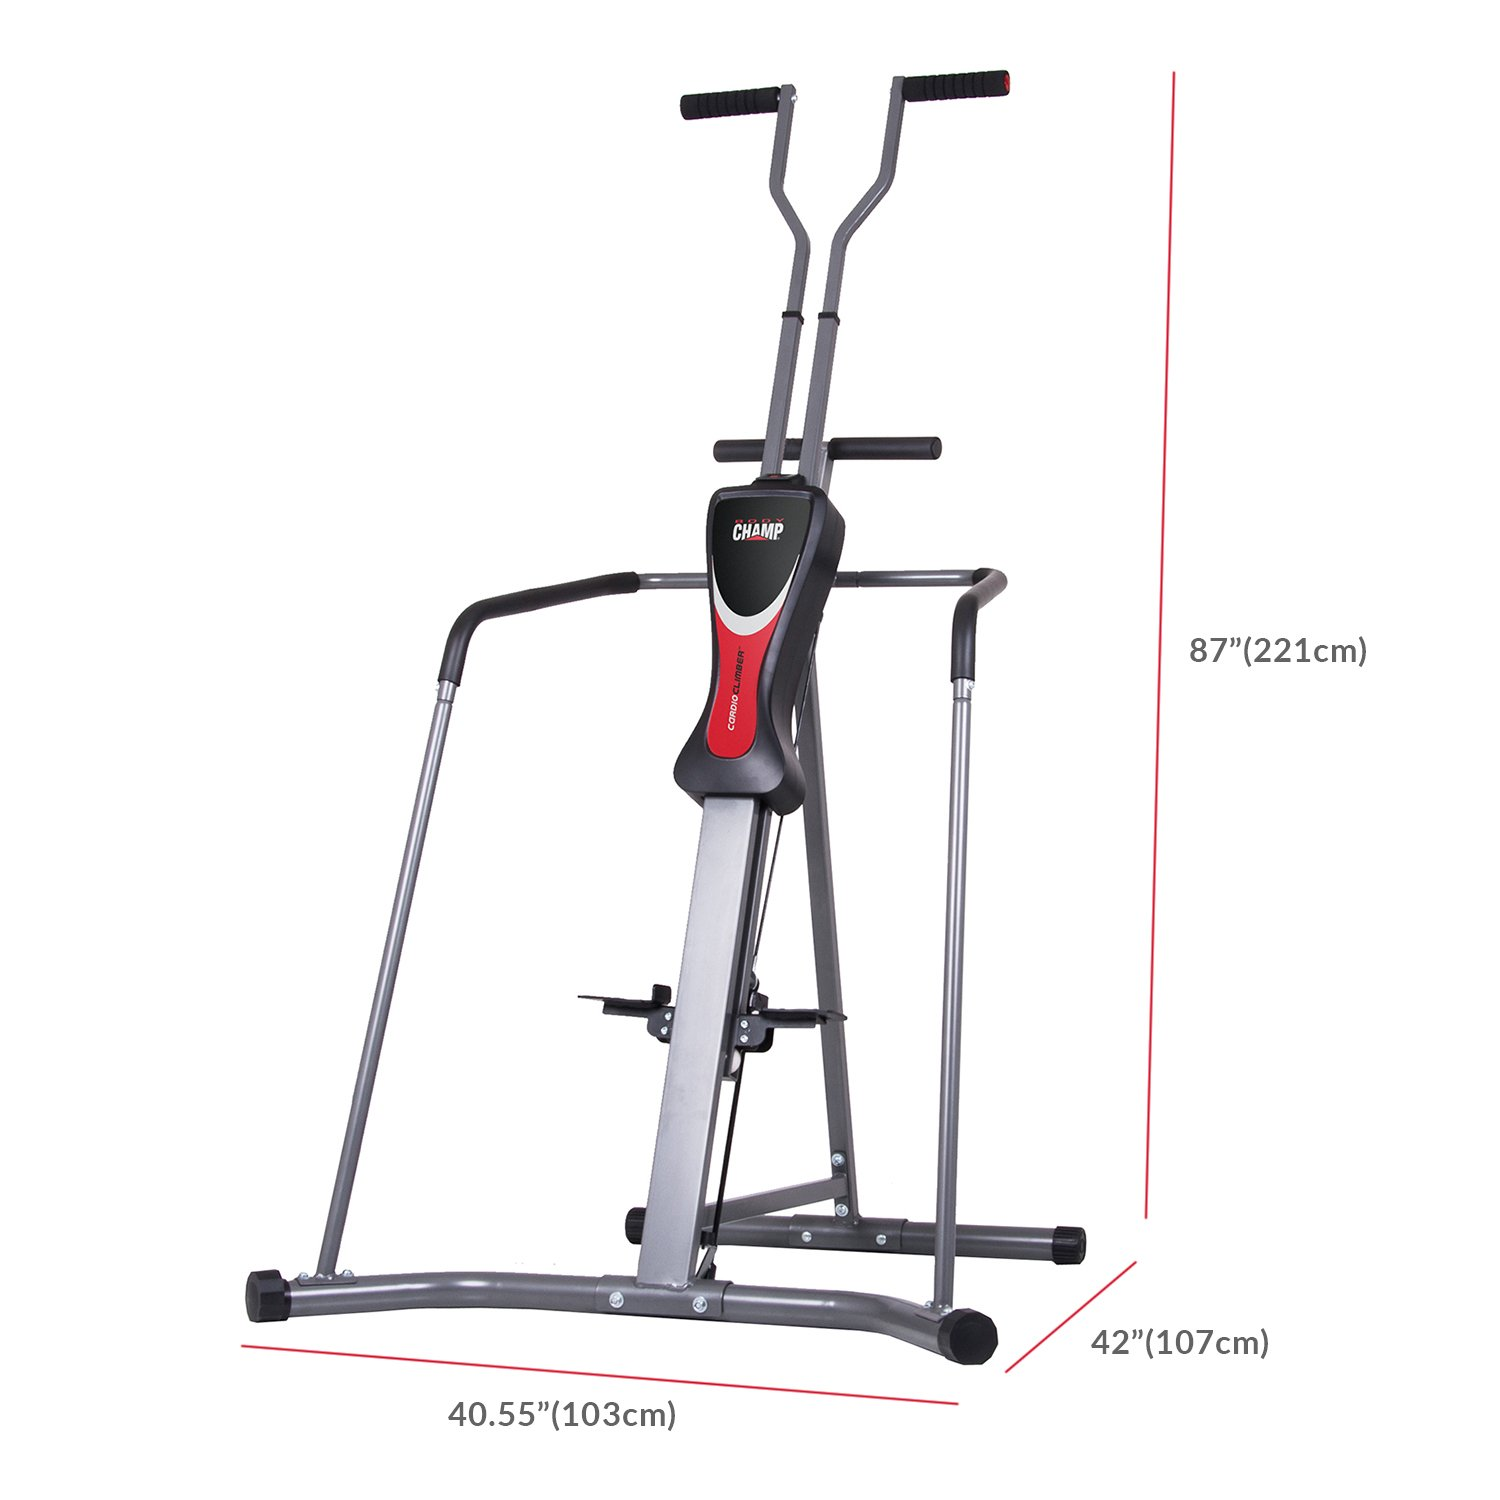 Body Champ Leisa Hart Cardio Vertical Stepper Climber / Includes Assembly Video, Meal Plan Guide, Workout Video access BCR890 by Body Champ (Image #2)